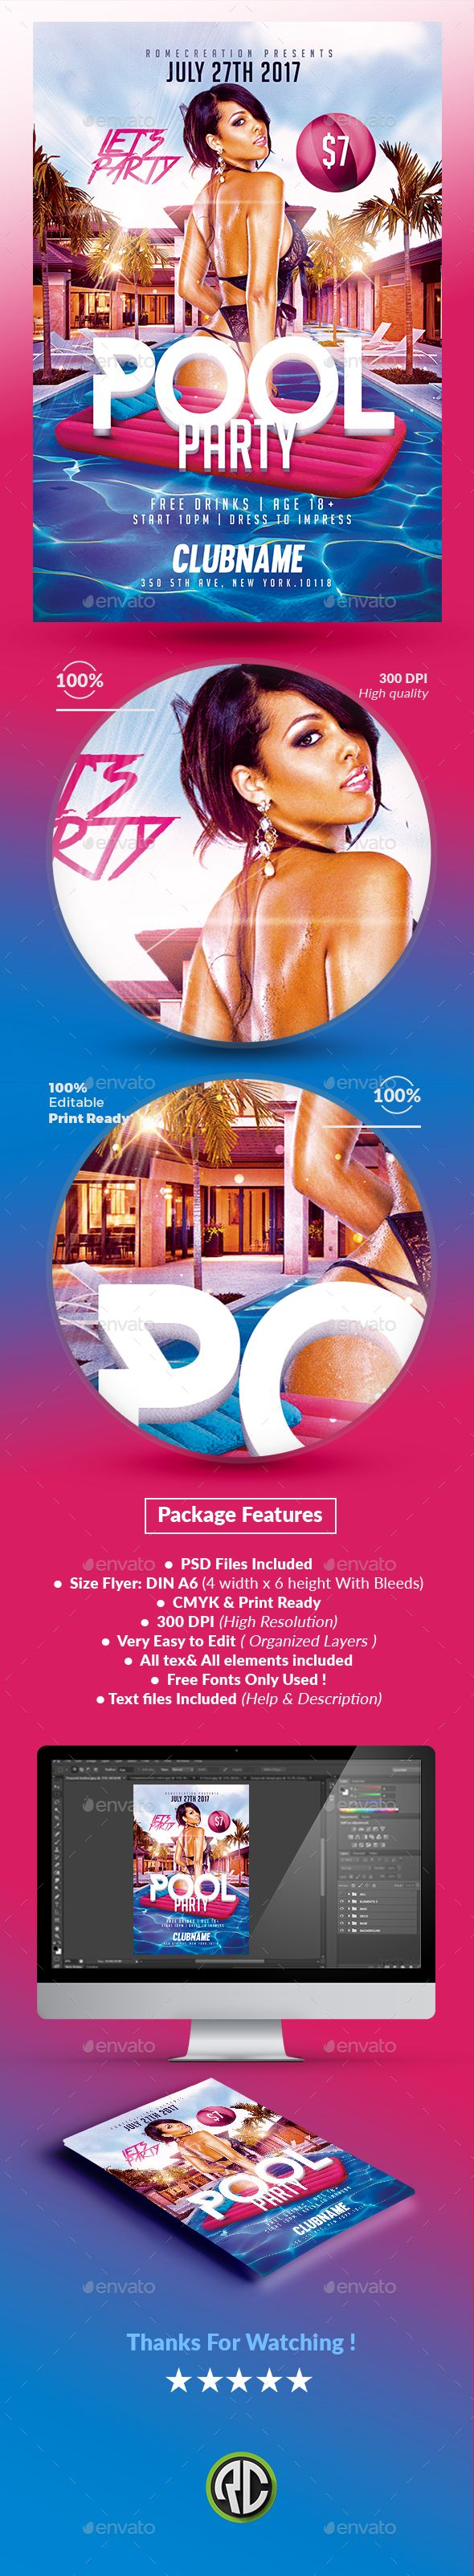 Summer Pool Party  Psd Flyer Template  Psd Flyer Templates